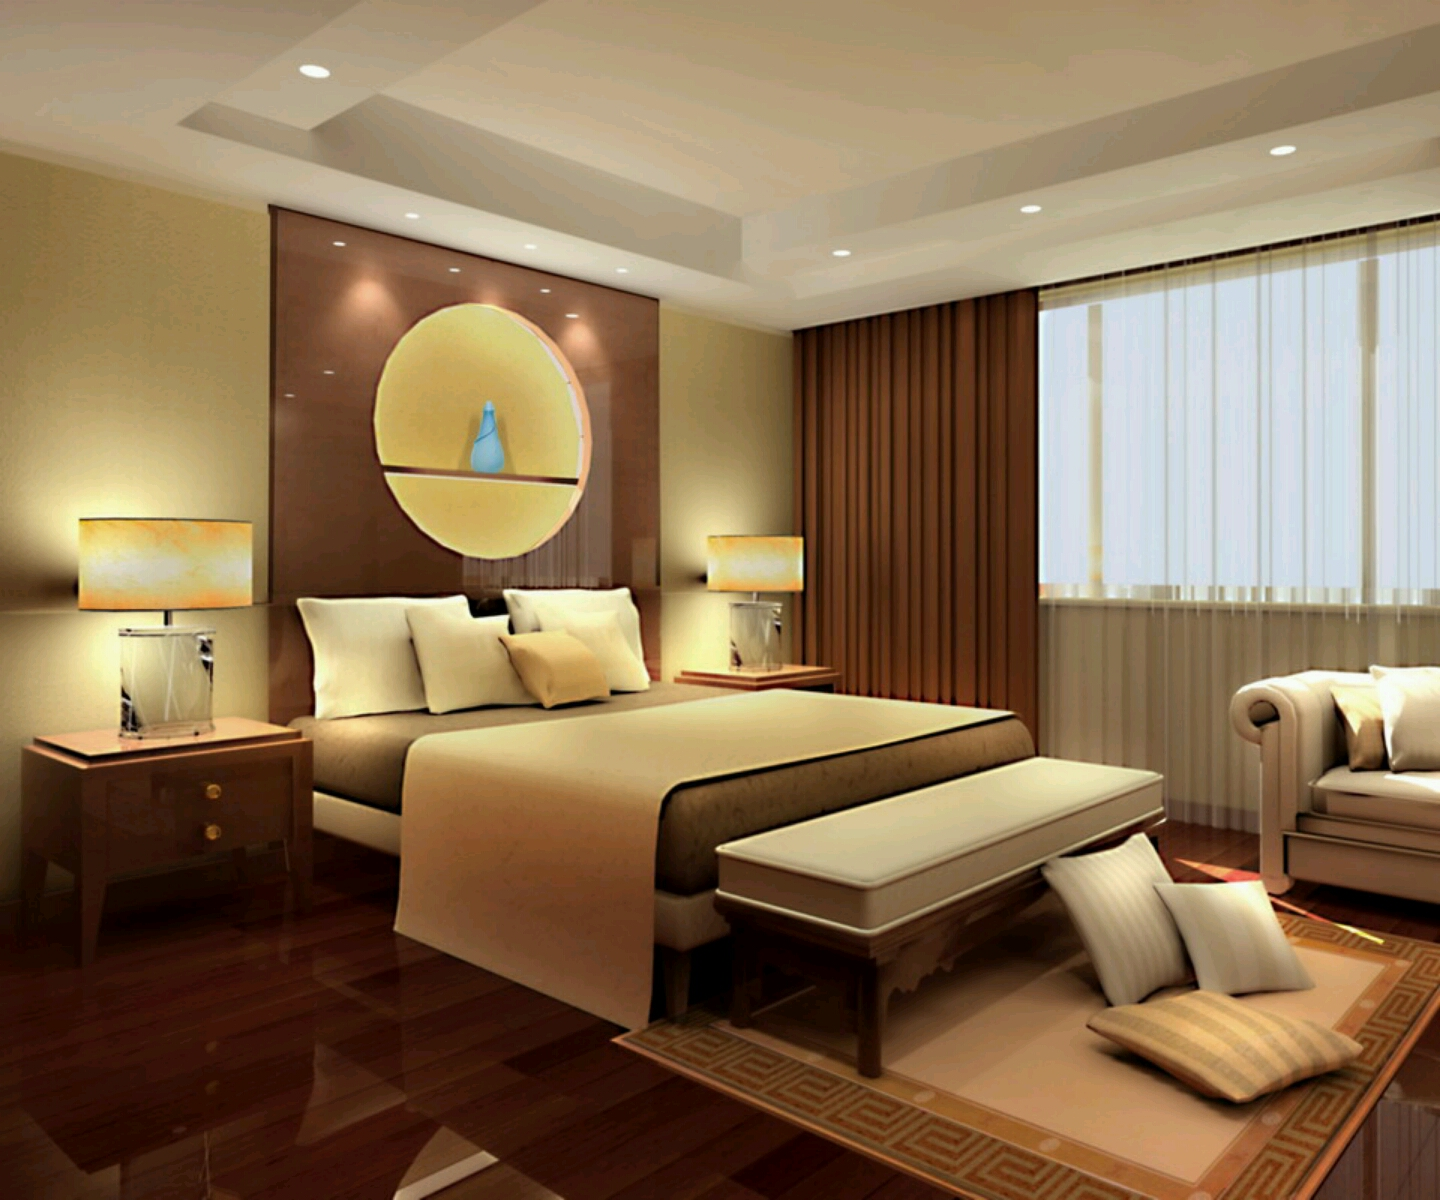 New home designs latest modern beautiful bedrooms for Beautiful bedroom ideas for small rooms